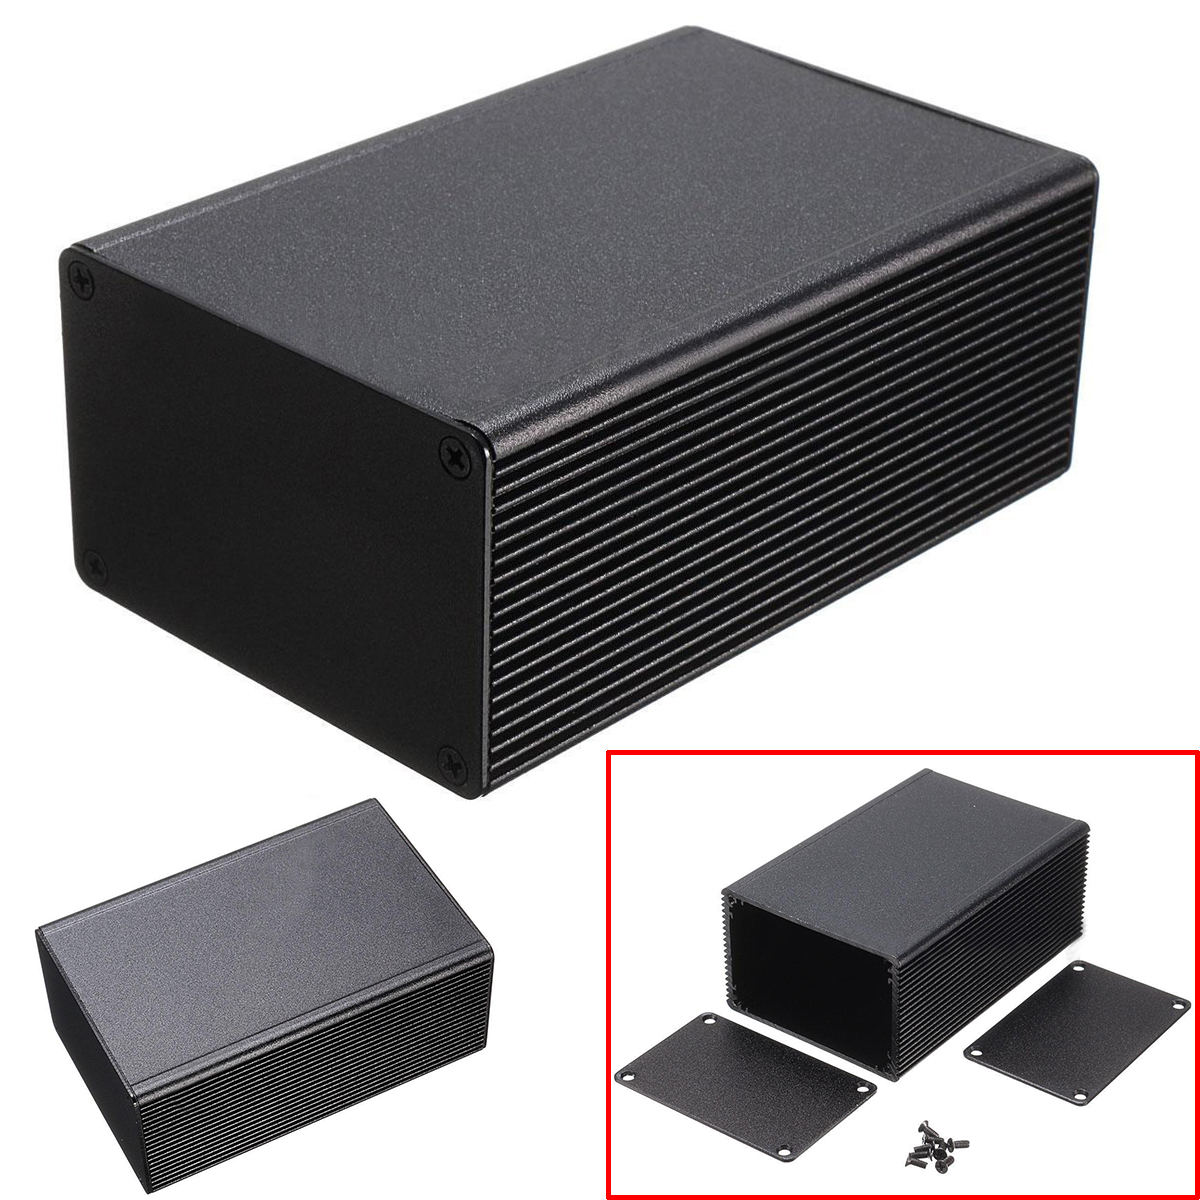 1pc Black Aluminum Enclosure PCB Electronic Instrument Meter Box Case 100x66x43mm комод универсальный hold четырехсекционный город plastic republic